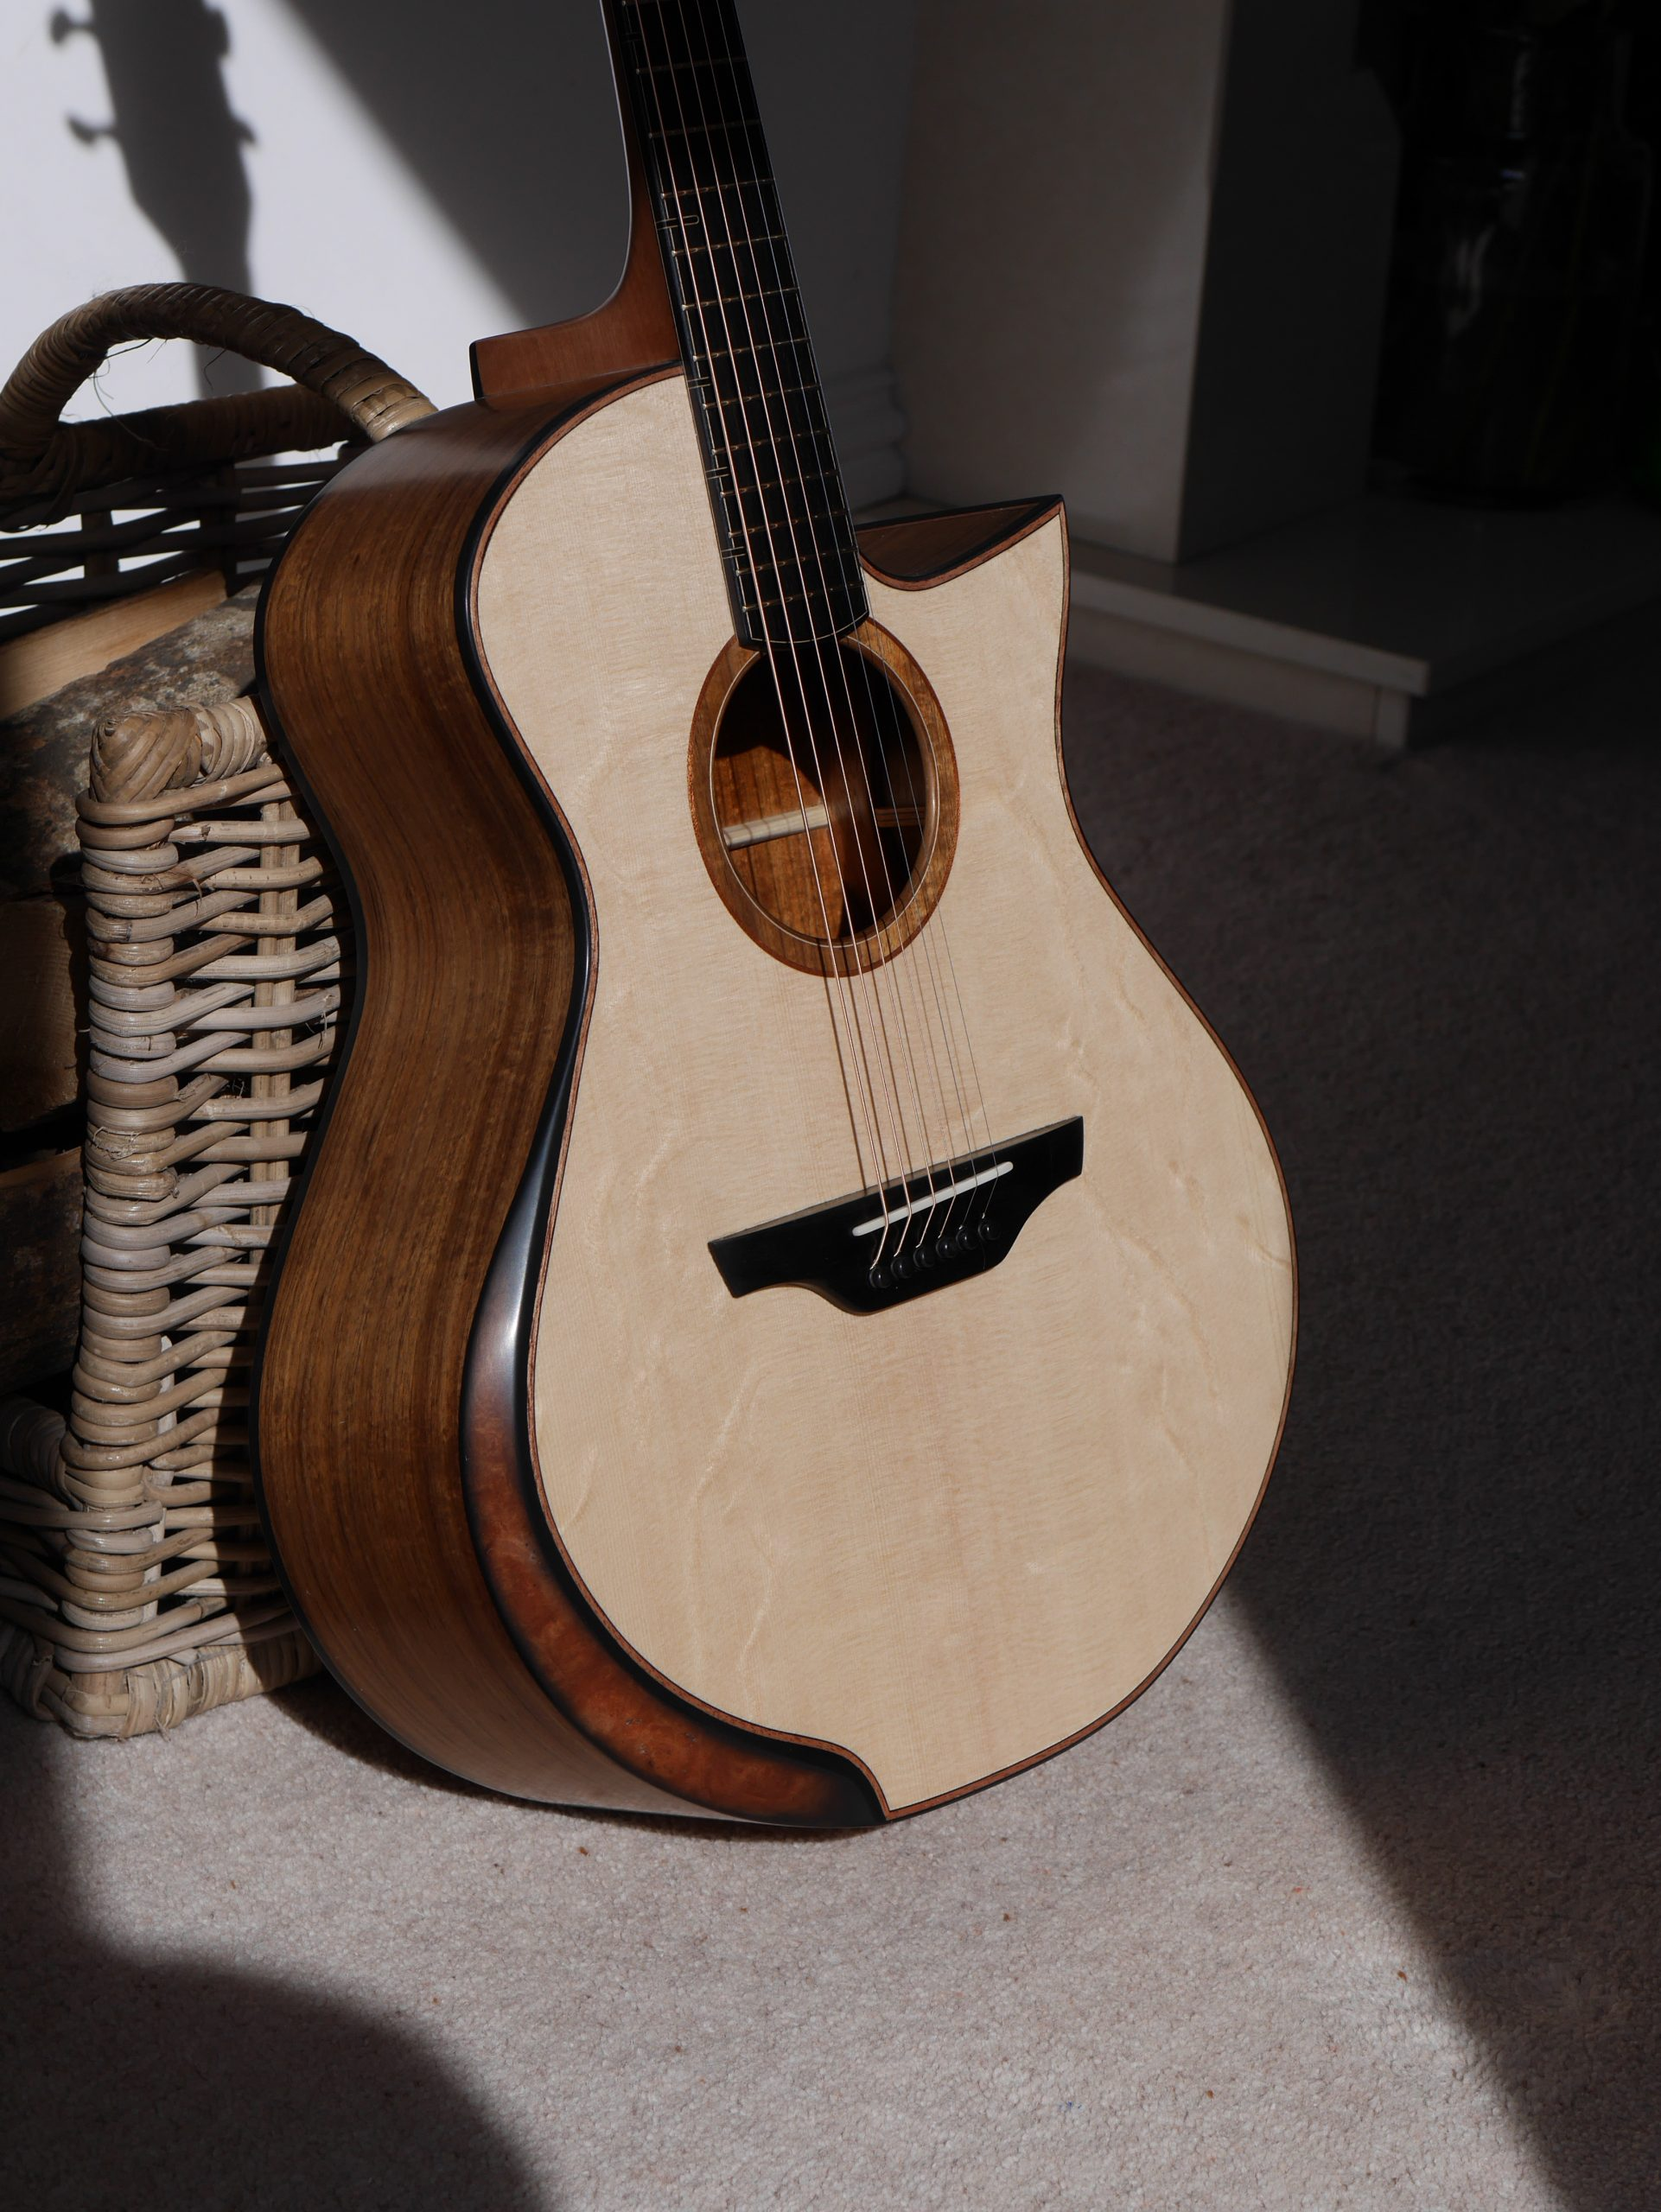 Grand concert, arm bevel, montgomery guitars, luthier, handmade, acoustic